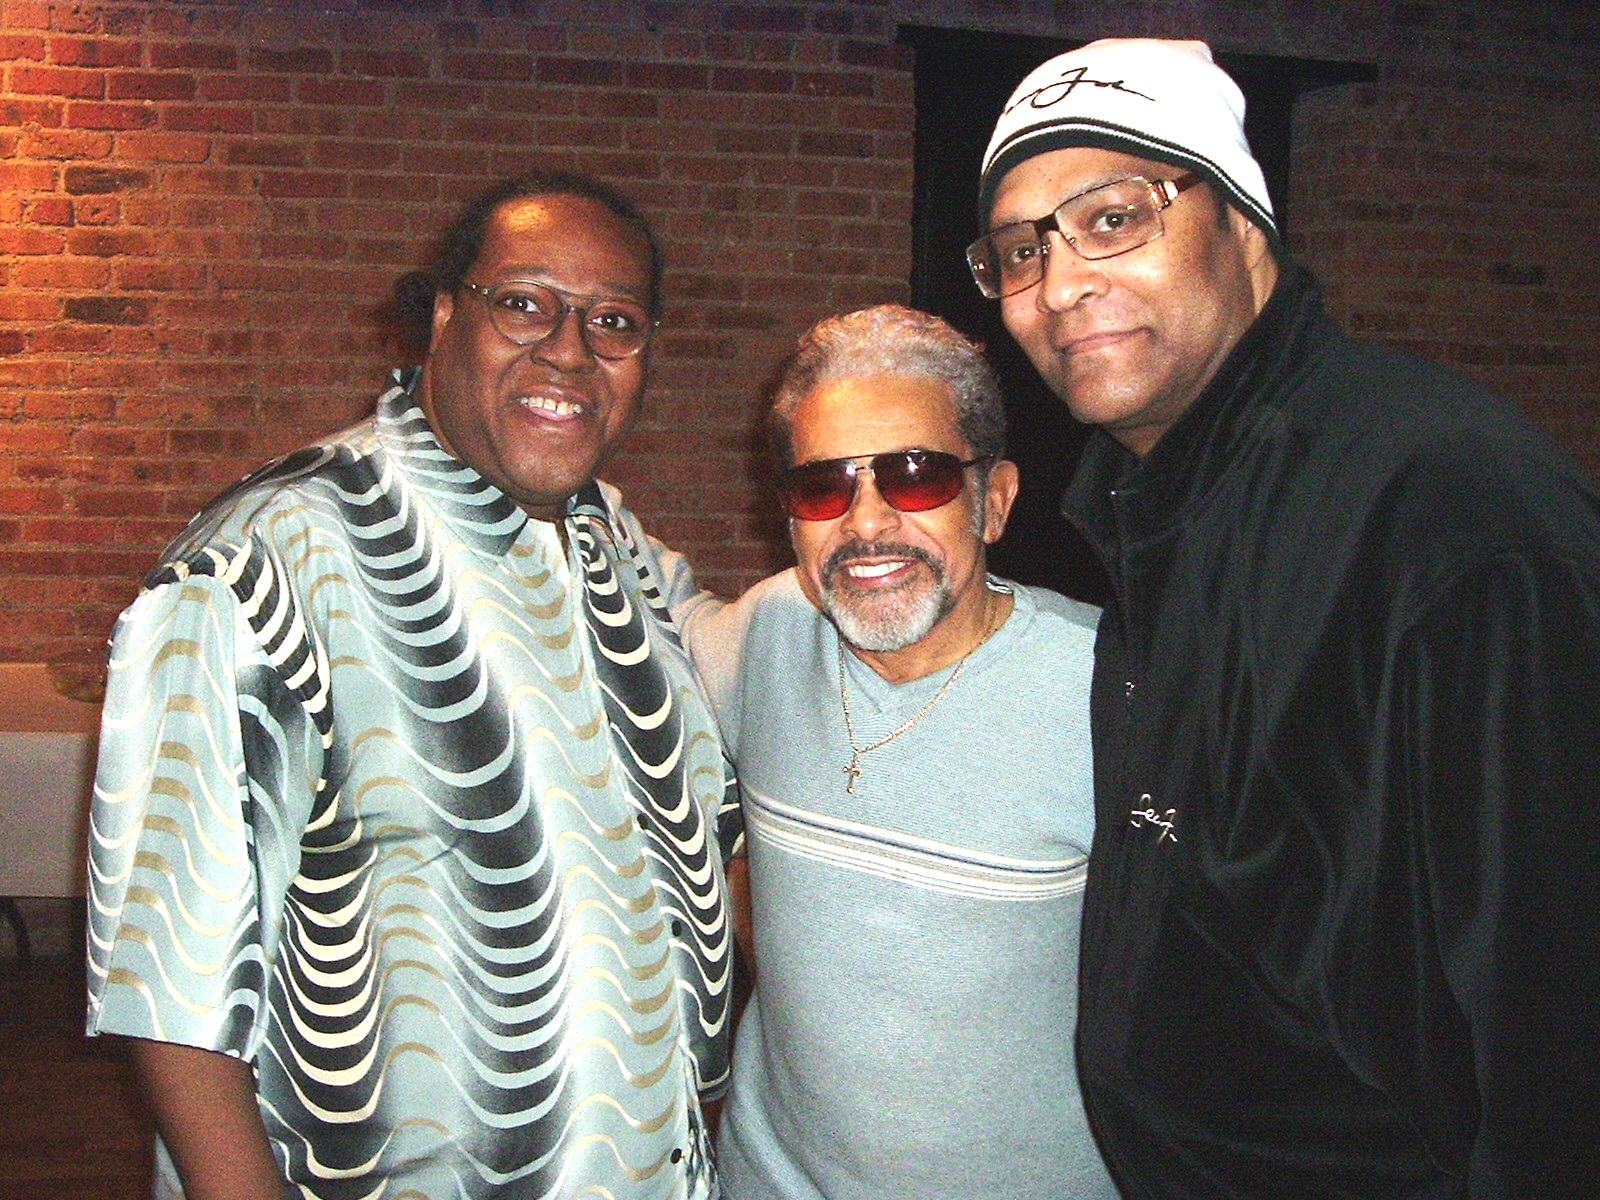 PJ WILLIS WITH SONNY SANDERS & FRED SIMONS OF THE LOST GENERATION